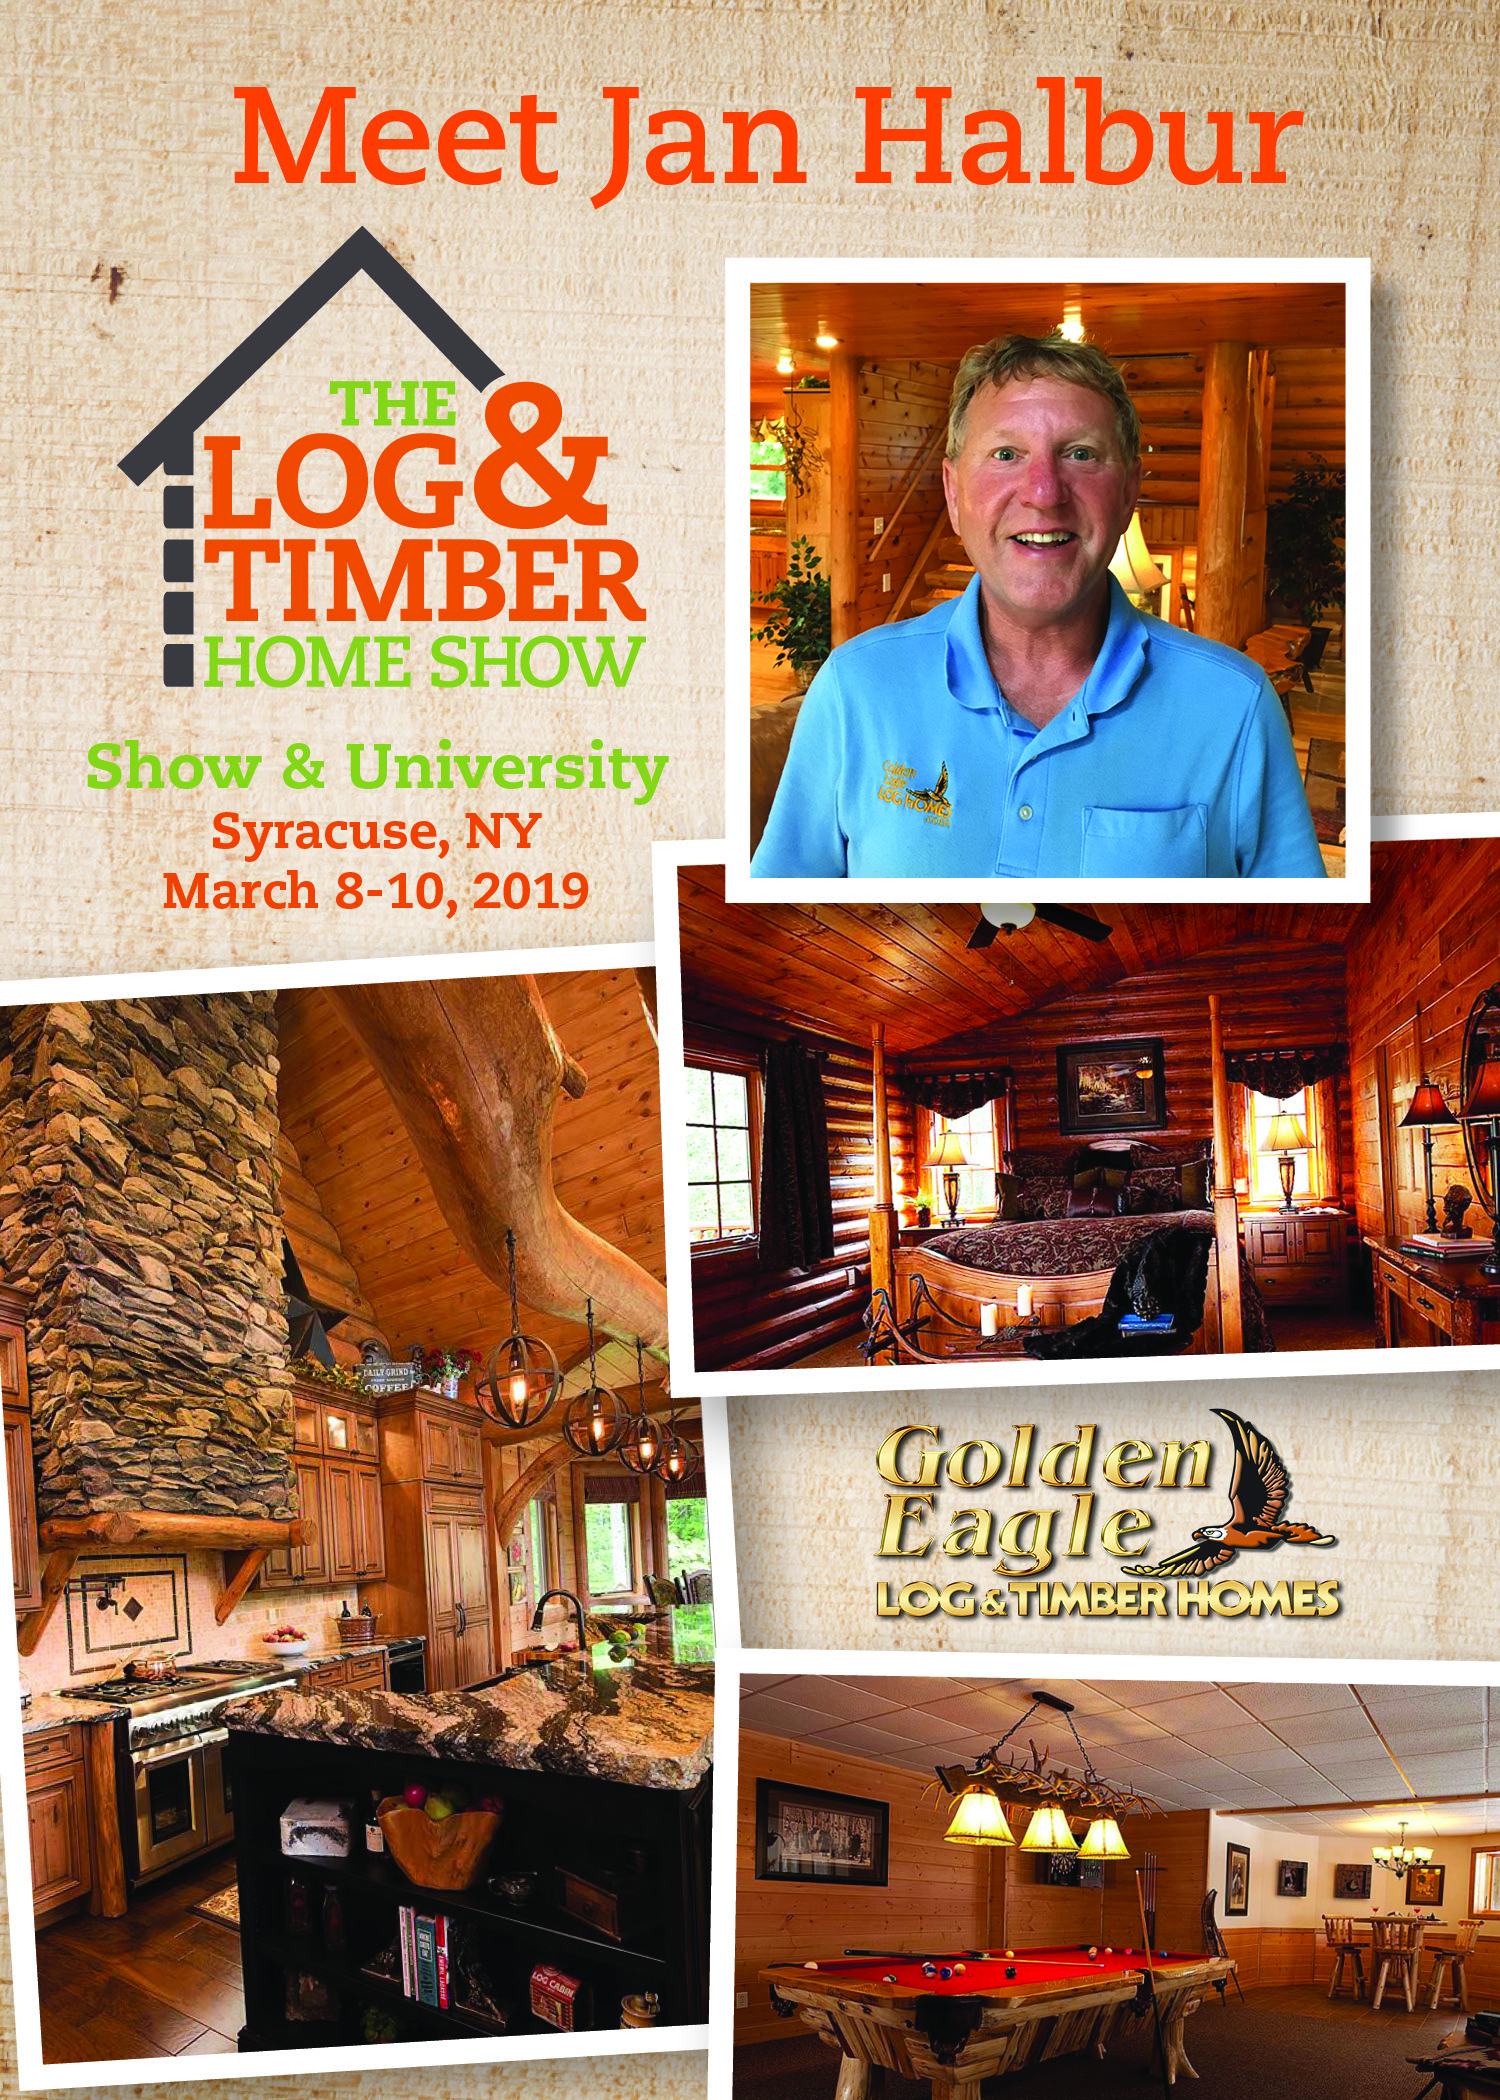 Golden Eagle Log & Timber Homes | Syracuse, NY | March 8-10, 2019 | Log & Timber Home Show | FREE Workshop | Log Homes | Timber Frame Builders